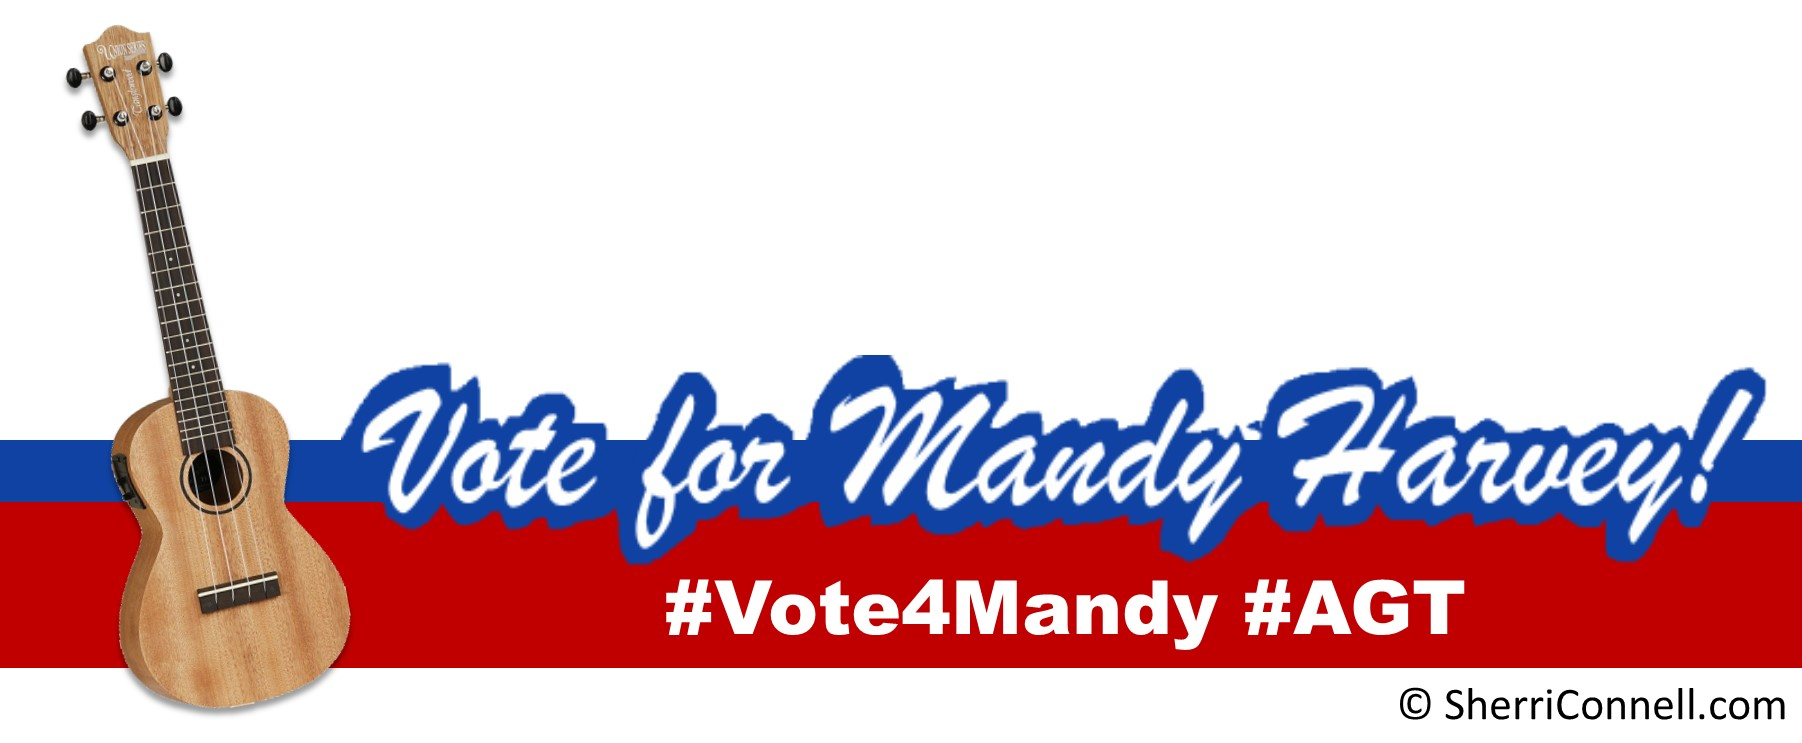 Vote for Mandy Harvey Facebook Frame